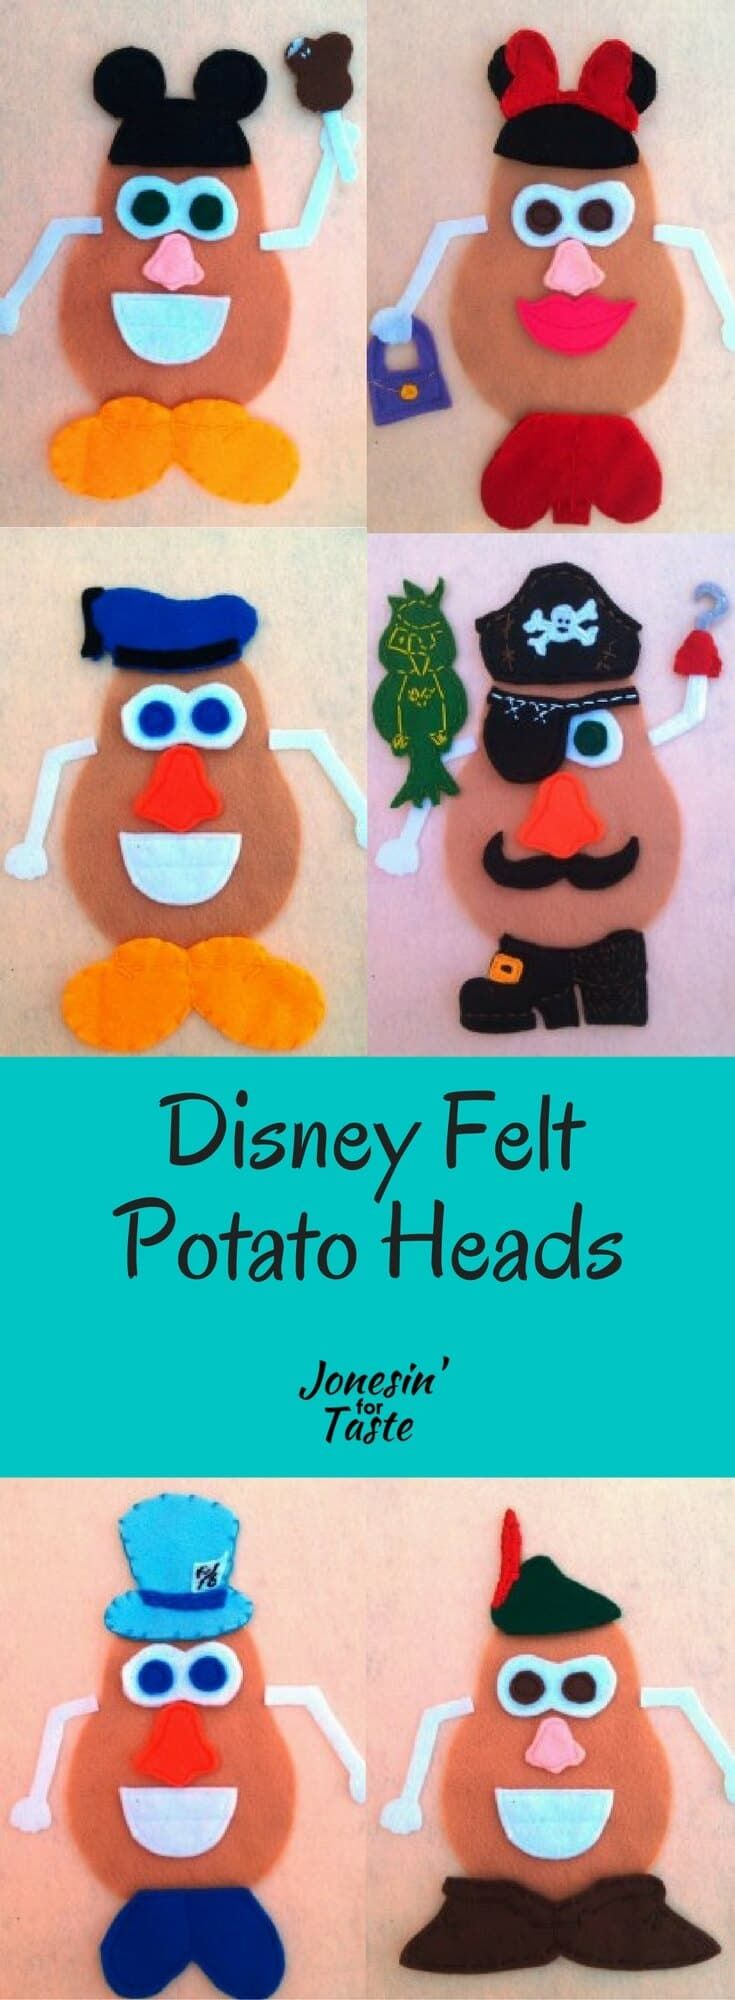 Disney Felt Potato Heads #mousecrafts